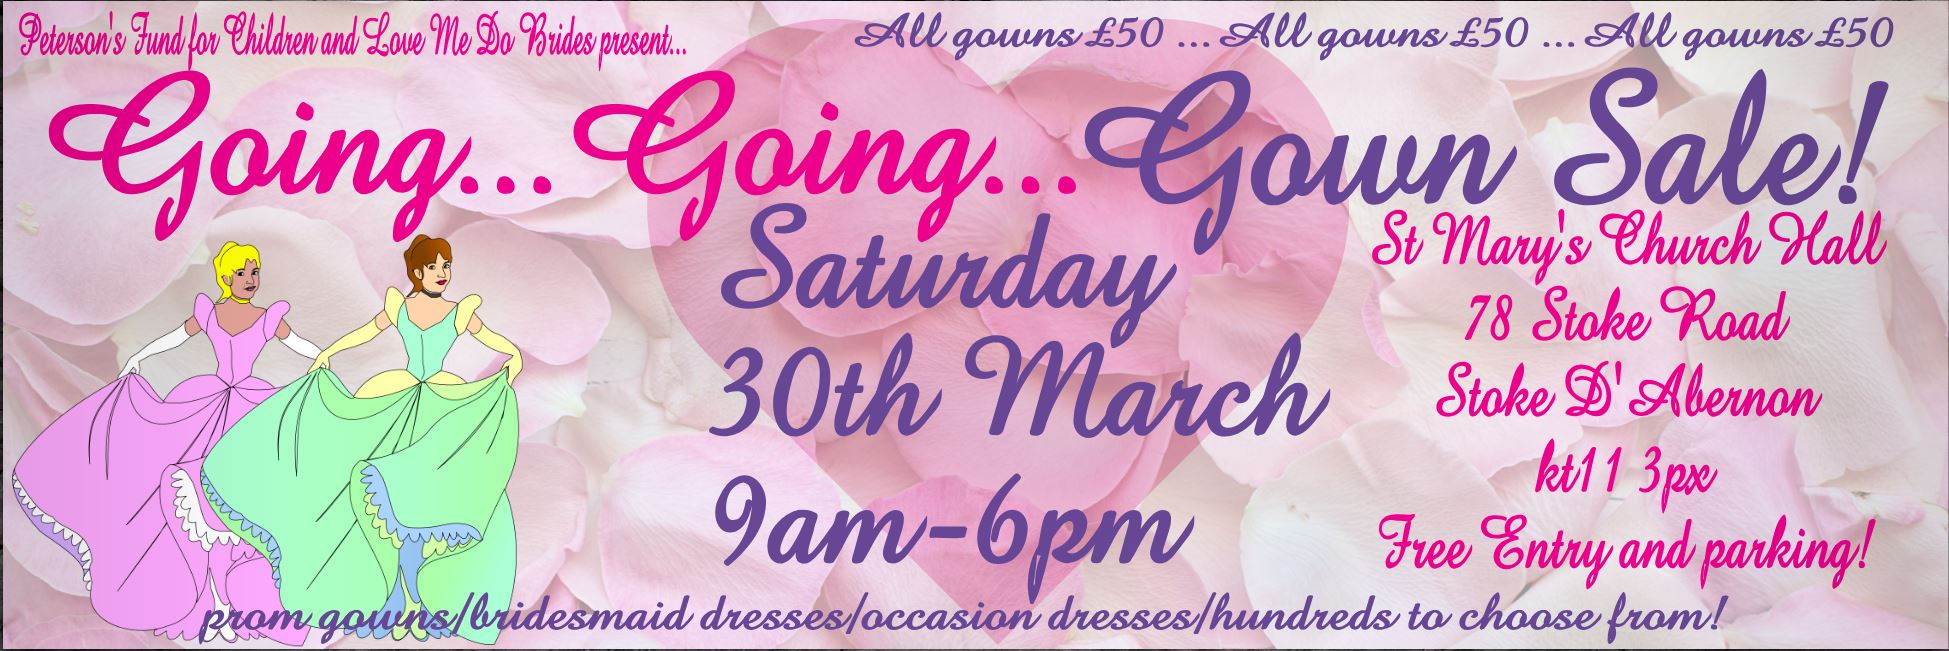 Going Going GOWN SALE!